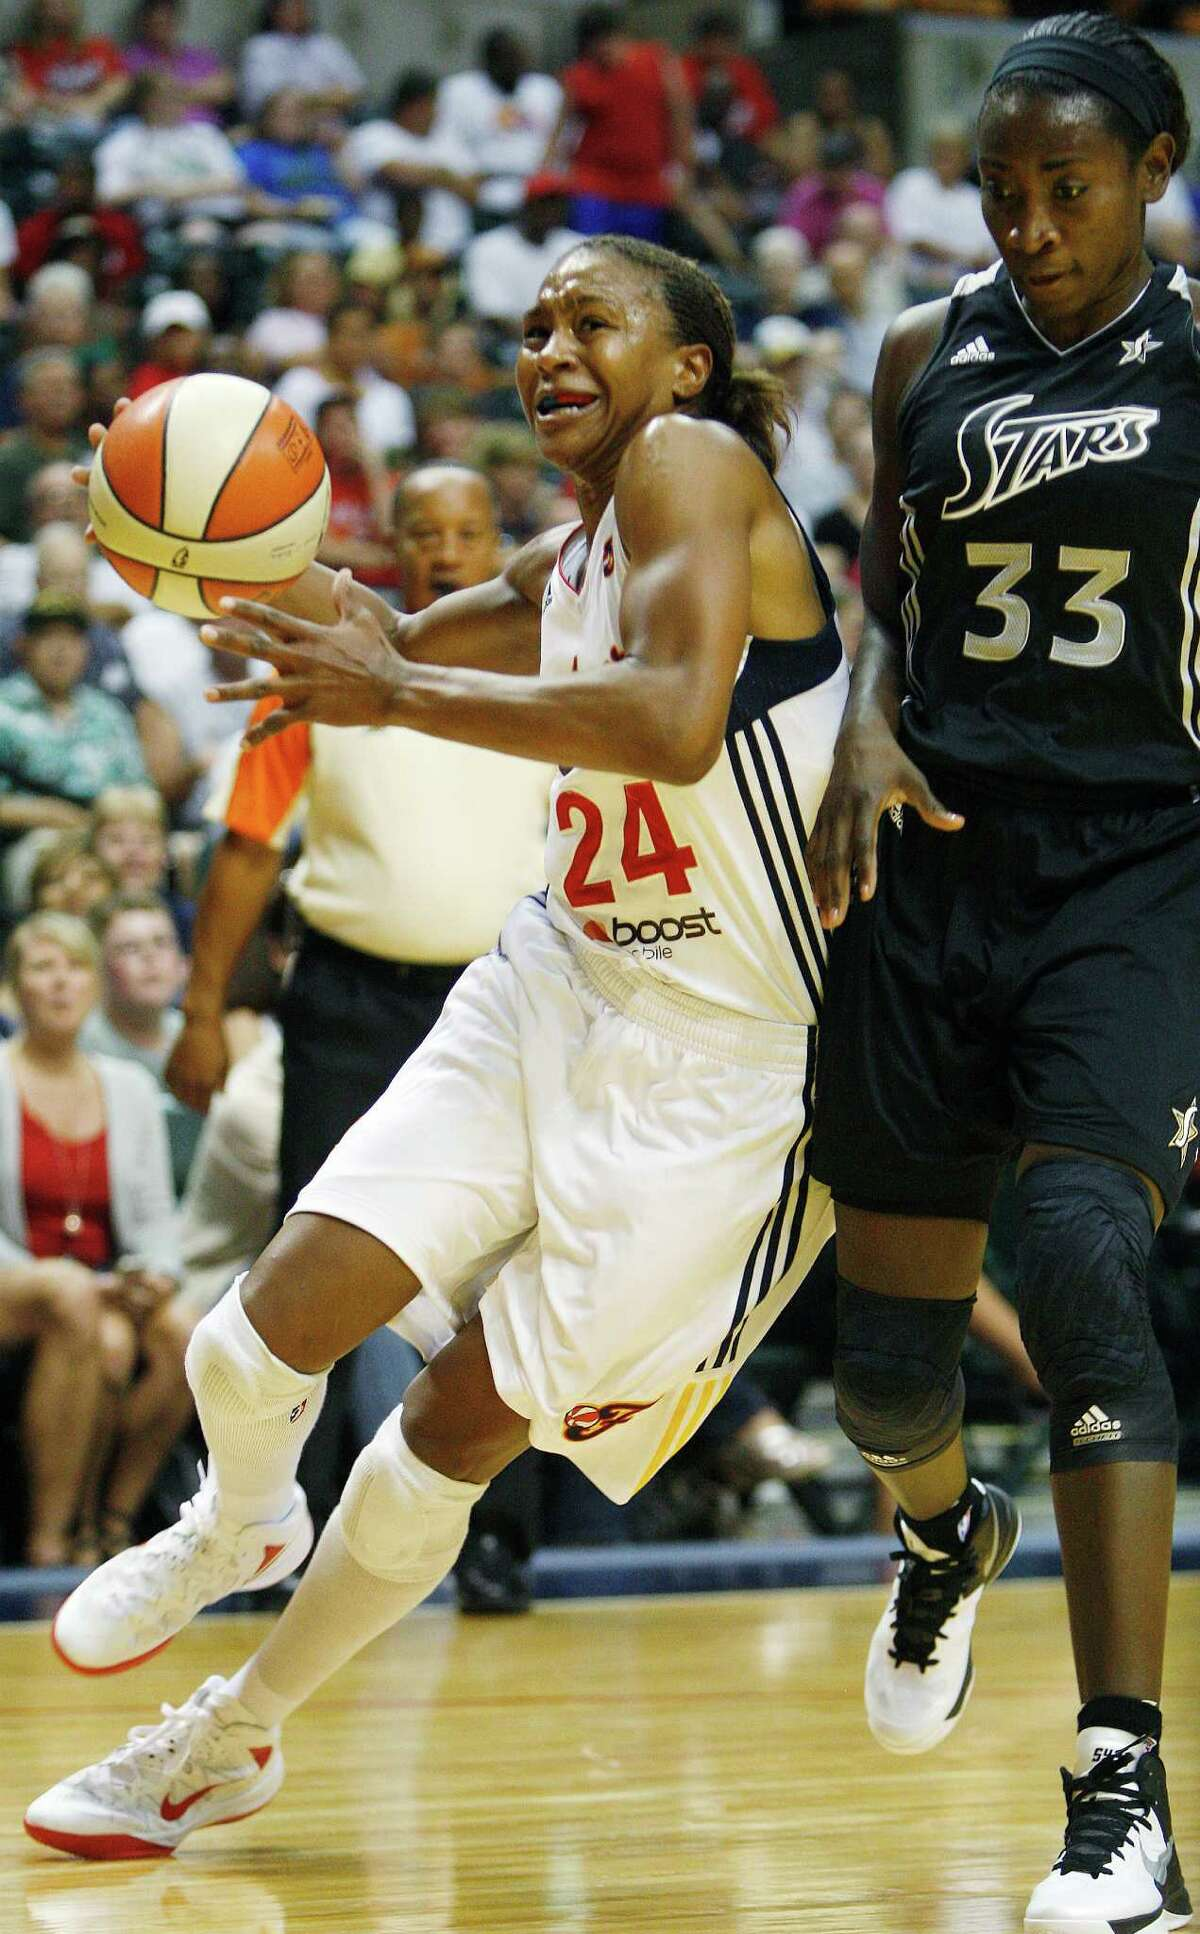 Indiana Fever's Tamika Catchings (24) drives against San Antonio Stars' Sophia Young (33) during the first half of a WNBA basketball game, Thursday, July 5, 2012, in Indianapolis.